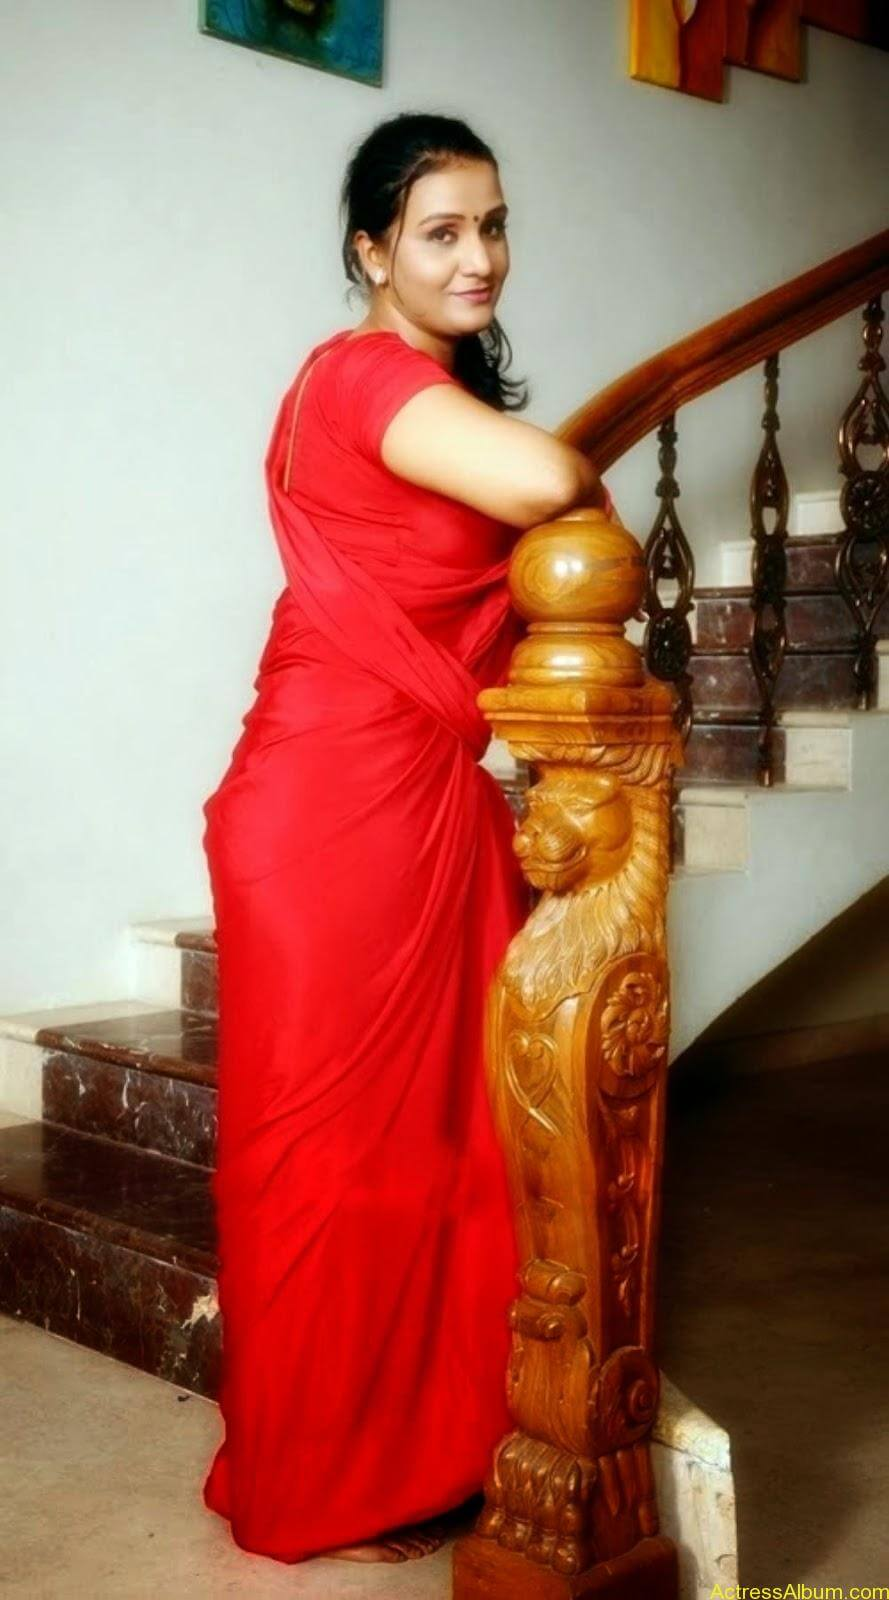 ACTRESS APOORVA VERY HOT IN RED SAREE PHOTO COLLECTION 12